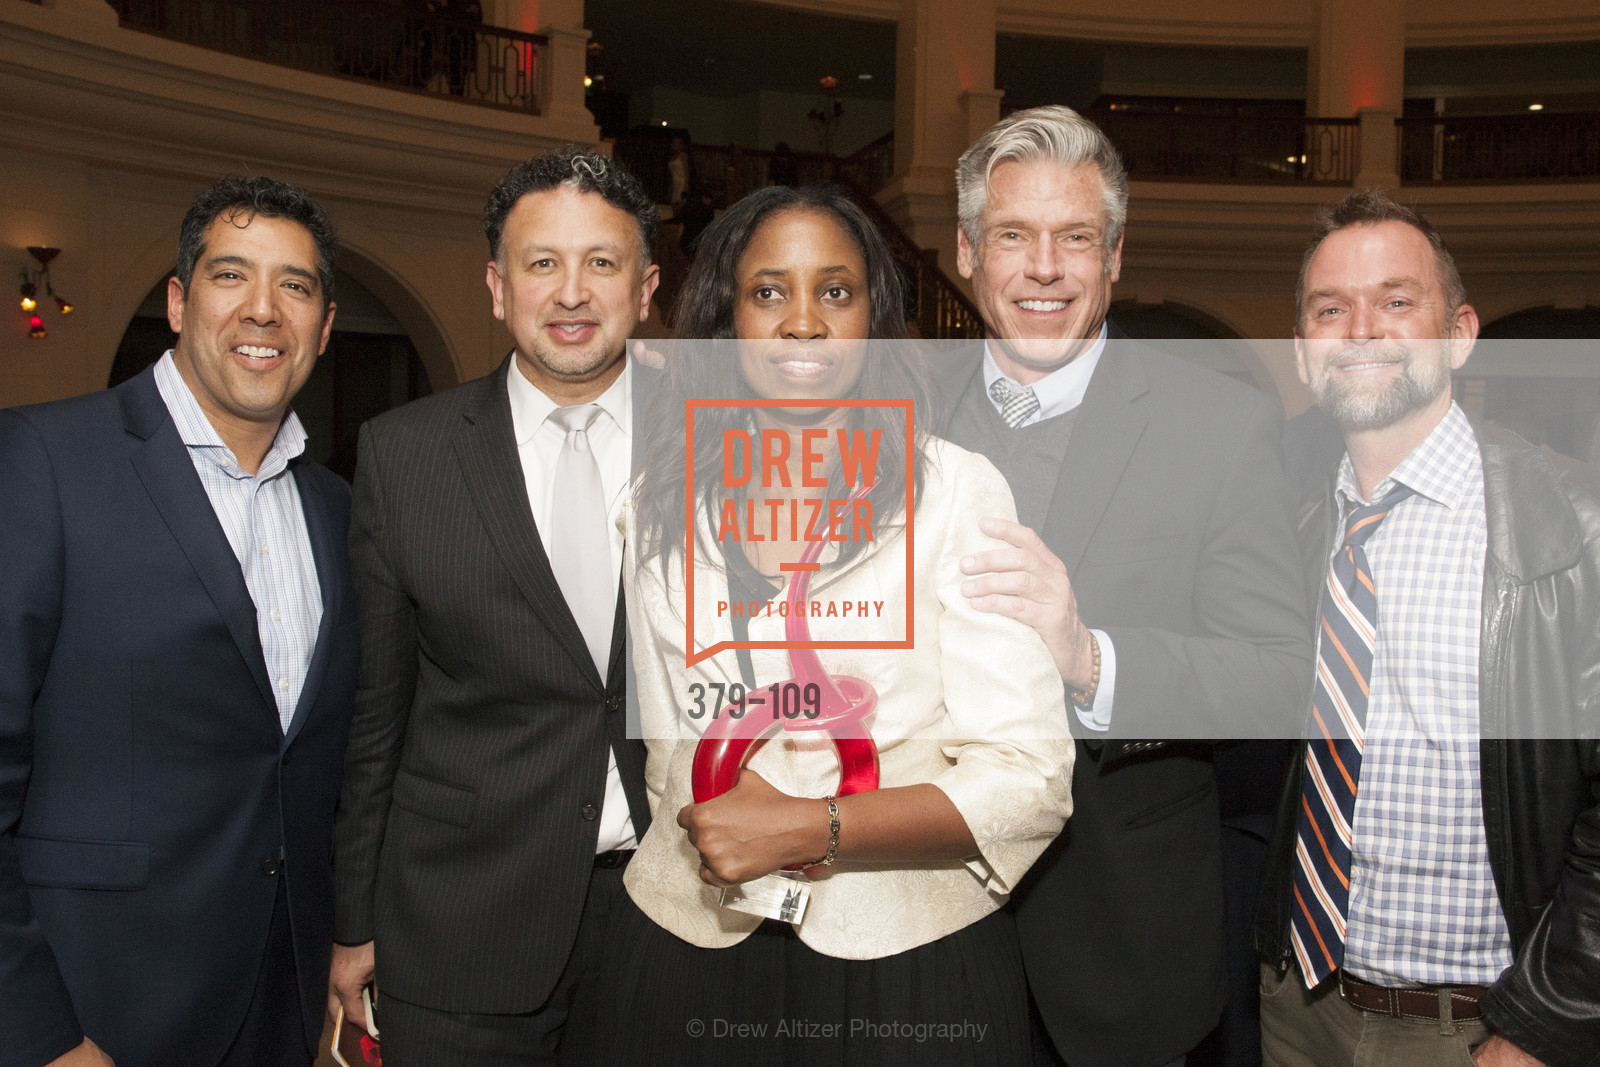 Alex Rivera, Miguel Bustos, TsiTsi Appollo, Greg Cassin, Mike Hickey, PANGAEA GLOBAL HEALTH Leadership Dinner at Rotunda in Oakland, The Rotunda. Oakland, May 11th, 2015,Drew Altizer, Drew Altizer Photography, full-service agency, private events, San Francisco photographer, photographer california